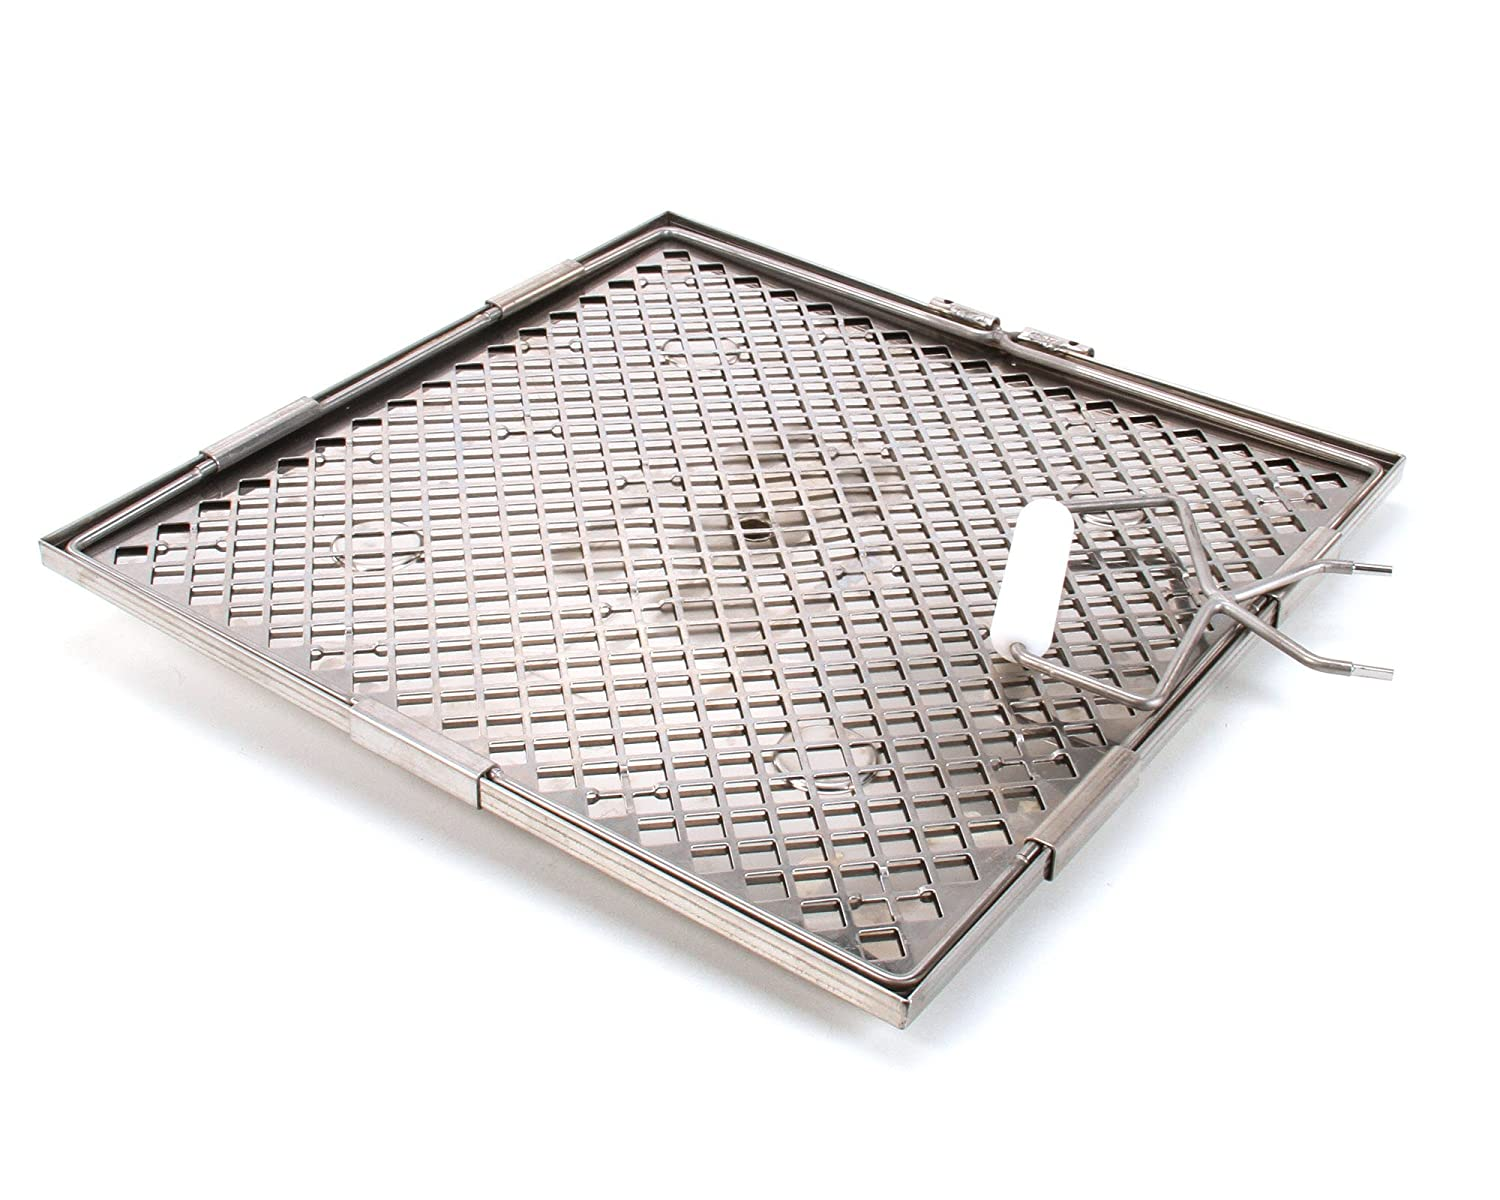 Filter 1001-95H F-95 Unifit Base and Screen, Stainless Steel